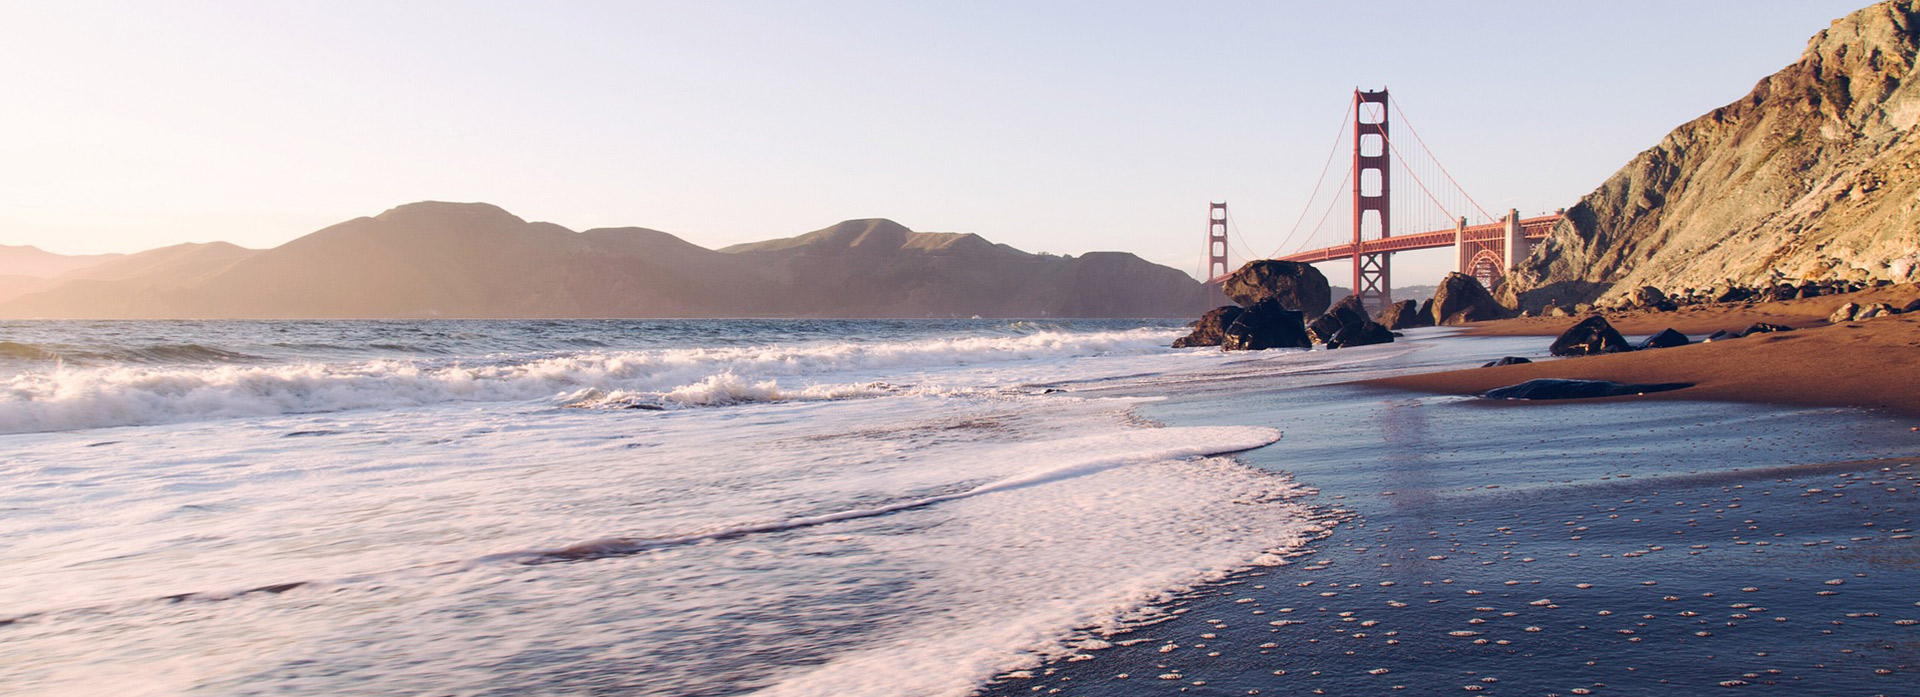 San Francisco Beach and Golden Gate Bridge